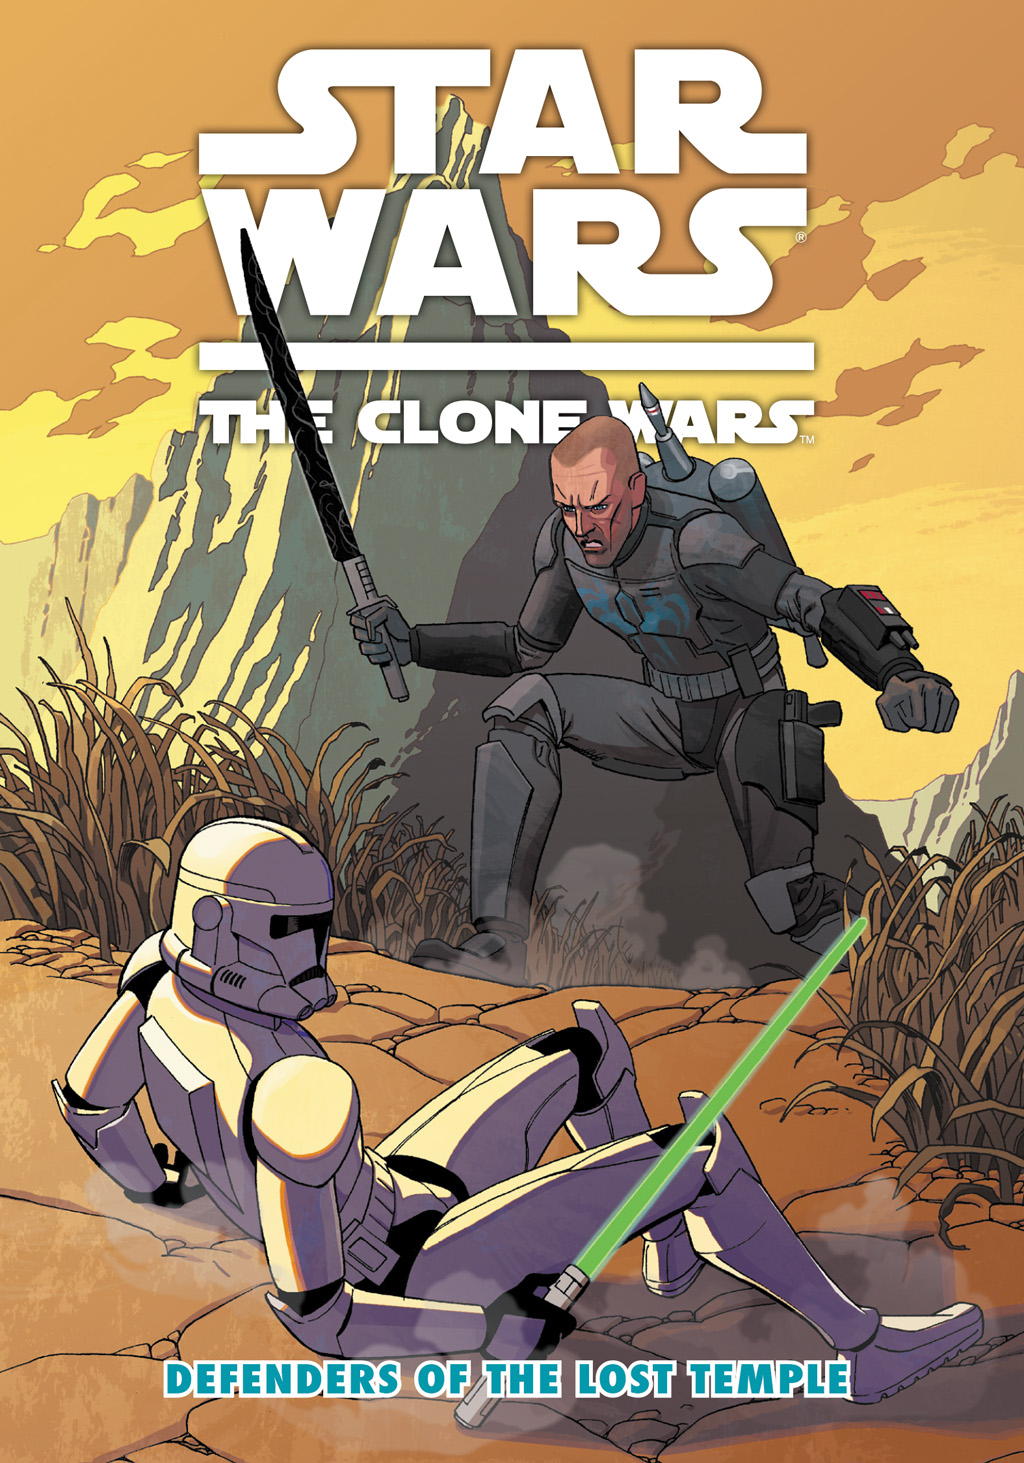 Star Wars: The Clone Wars - Defenders of the Lost Temple  Full Page 1